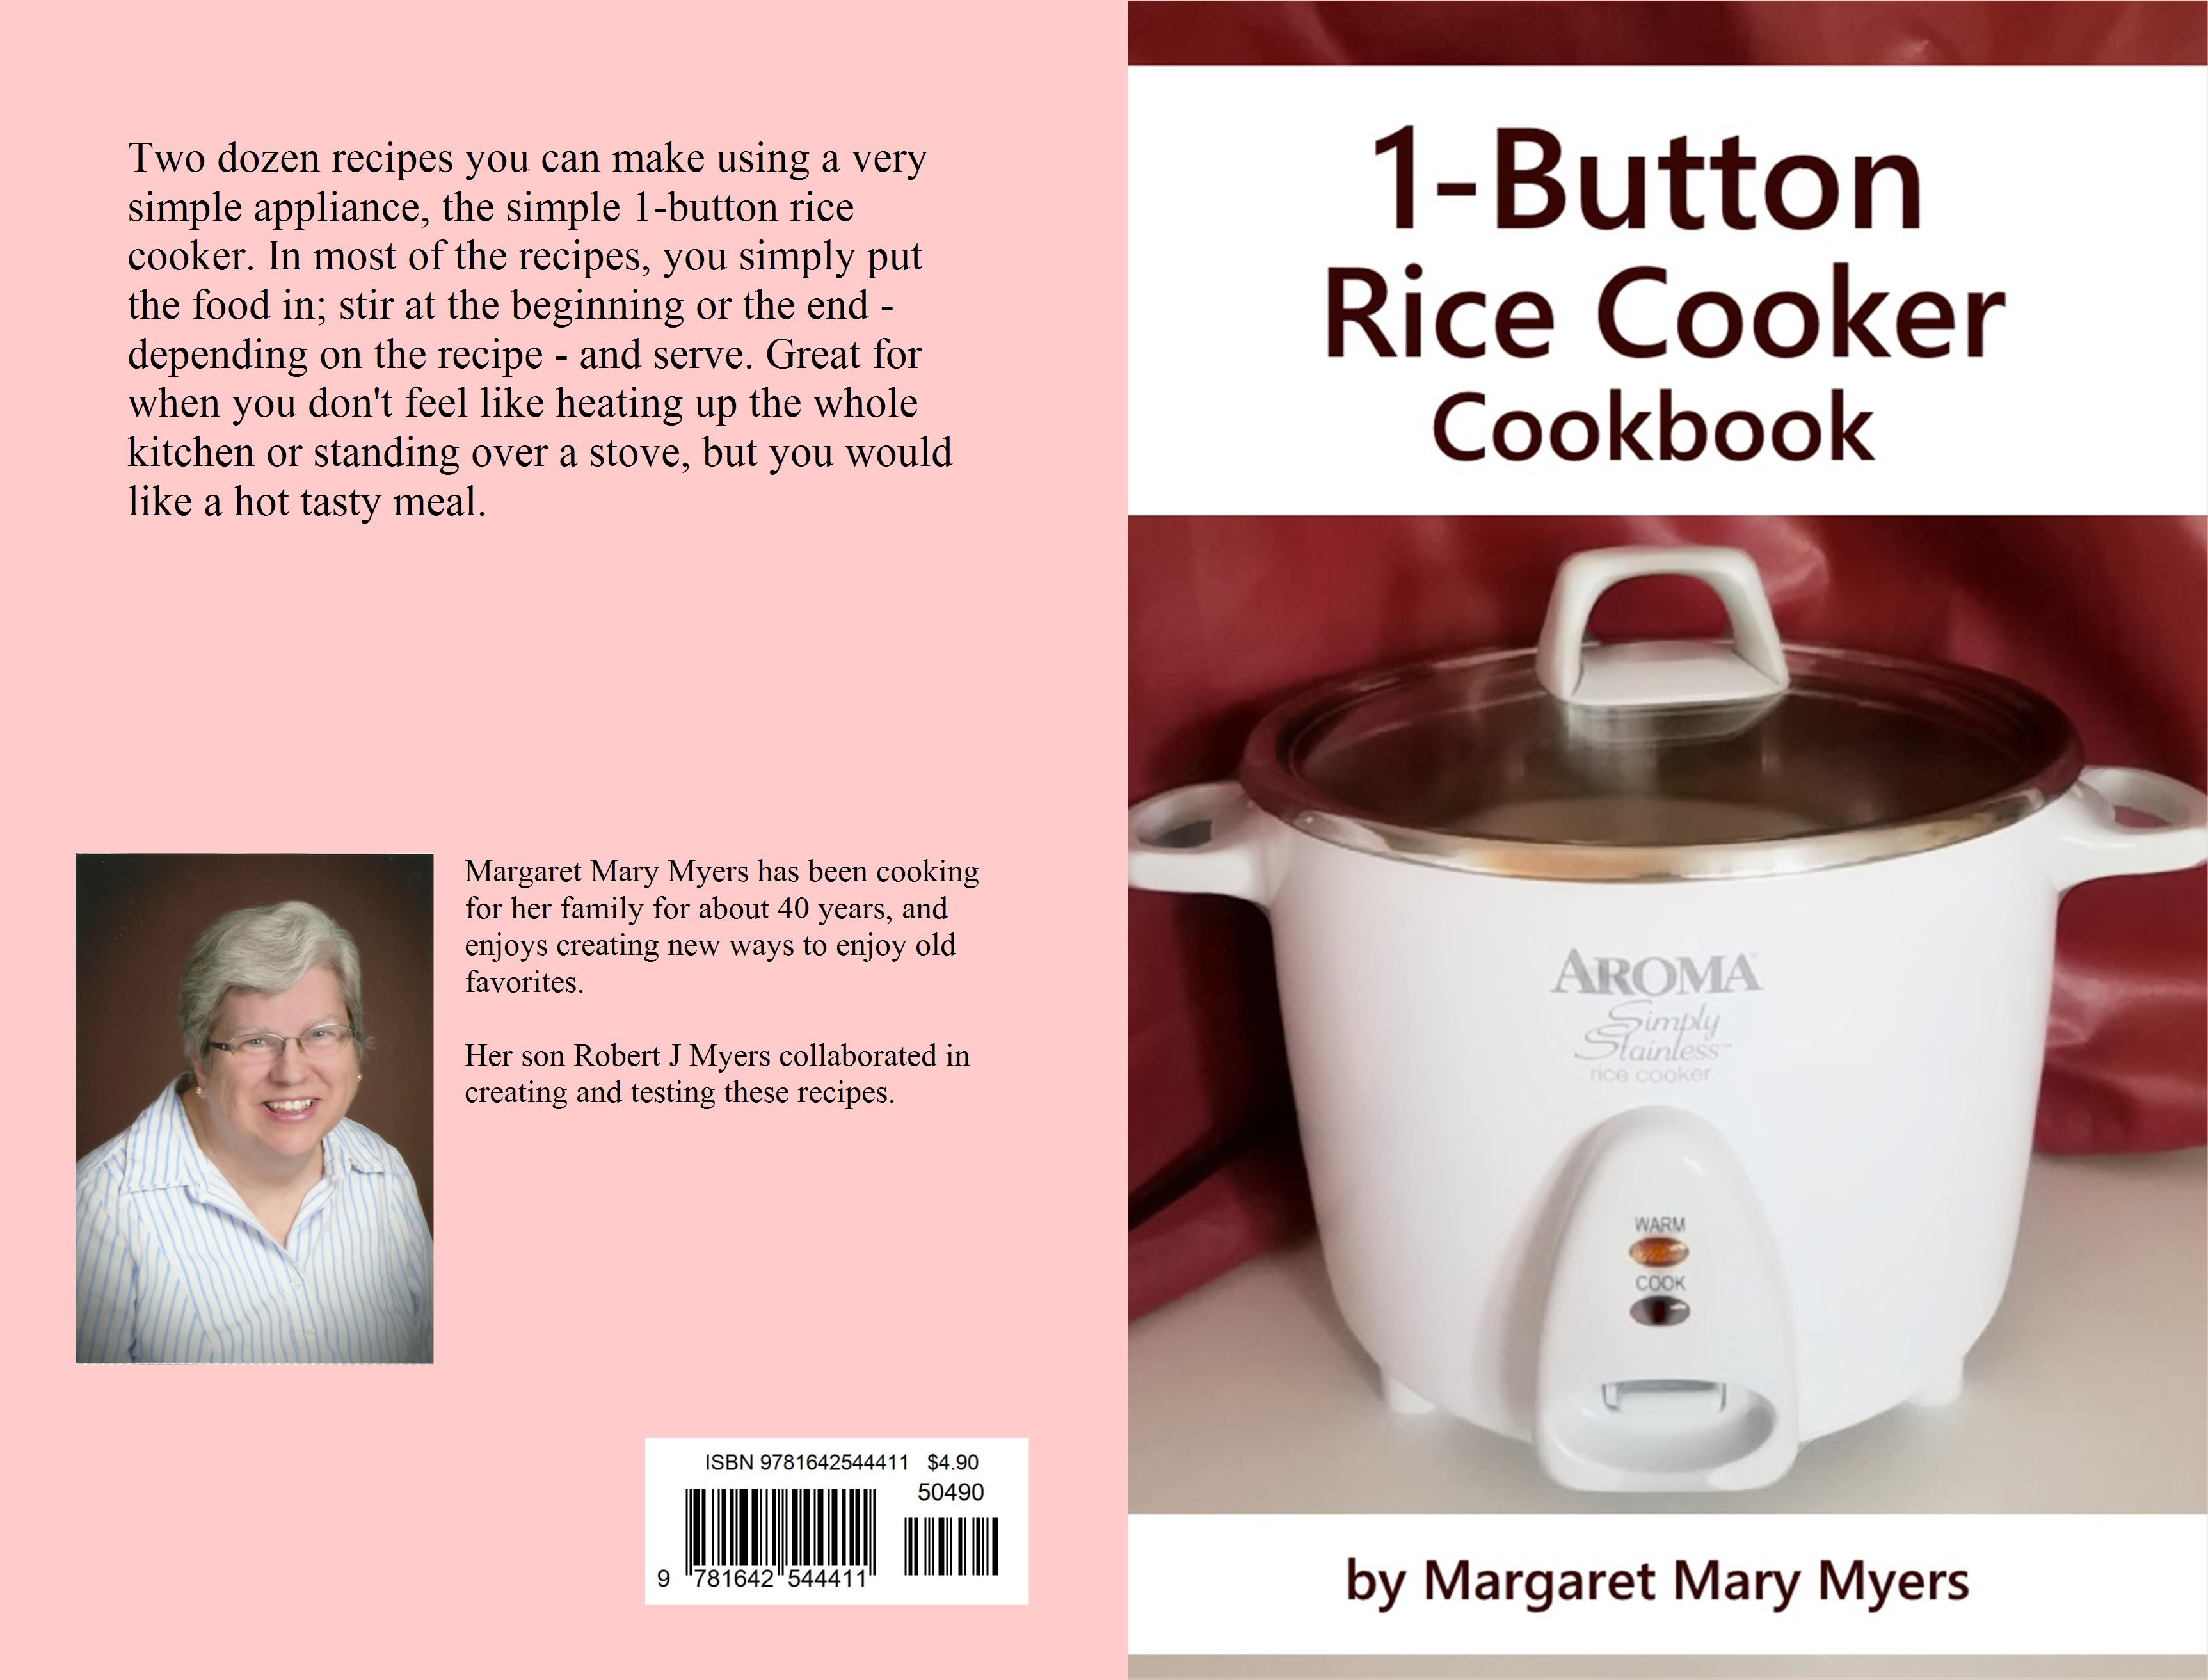 1-Button Rice Cooker Cookbook cover image